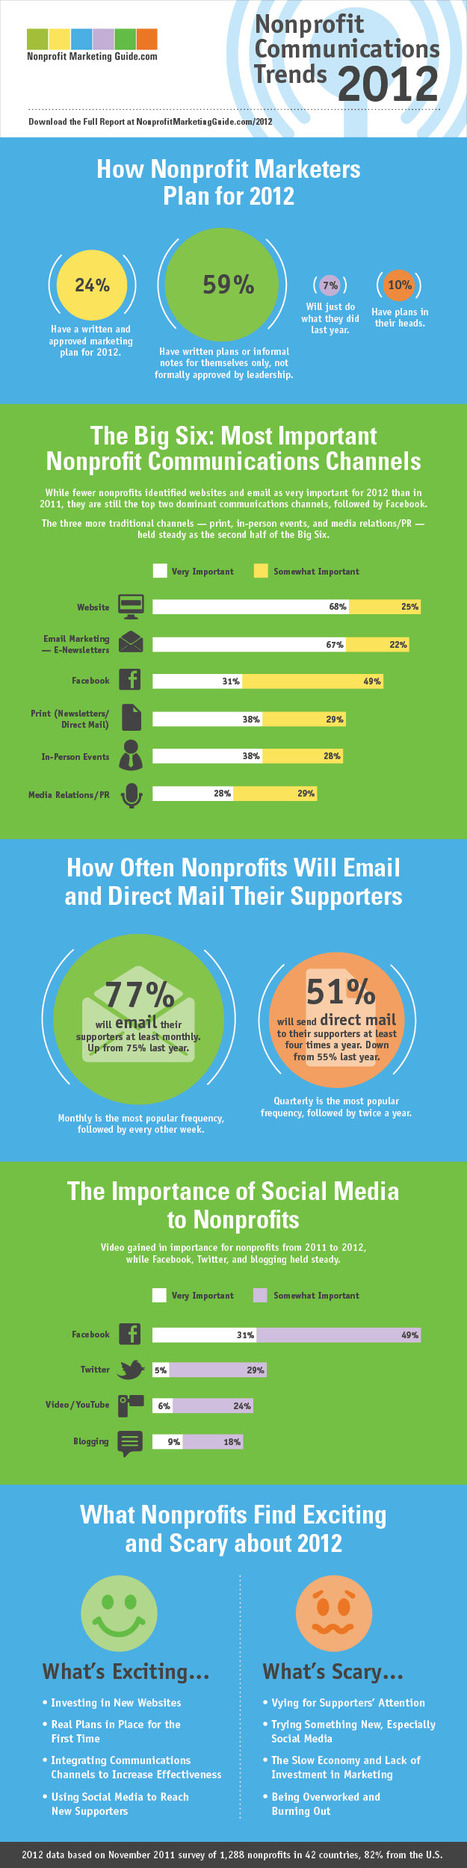 Nonprofit Communication Trends 2012 (Infographic) | charity | Scoop.it